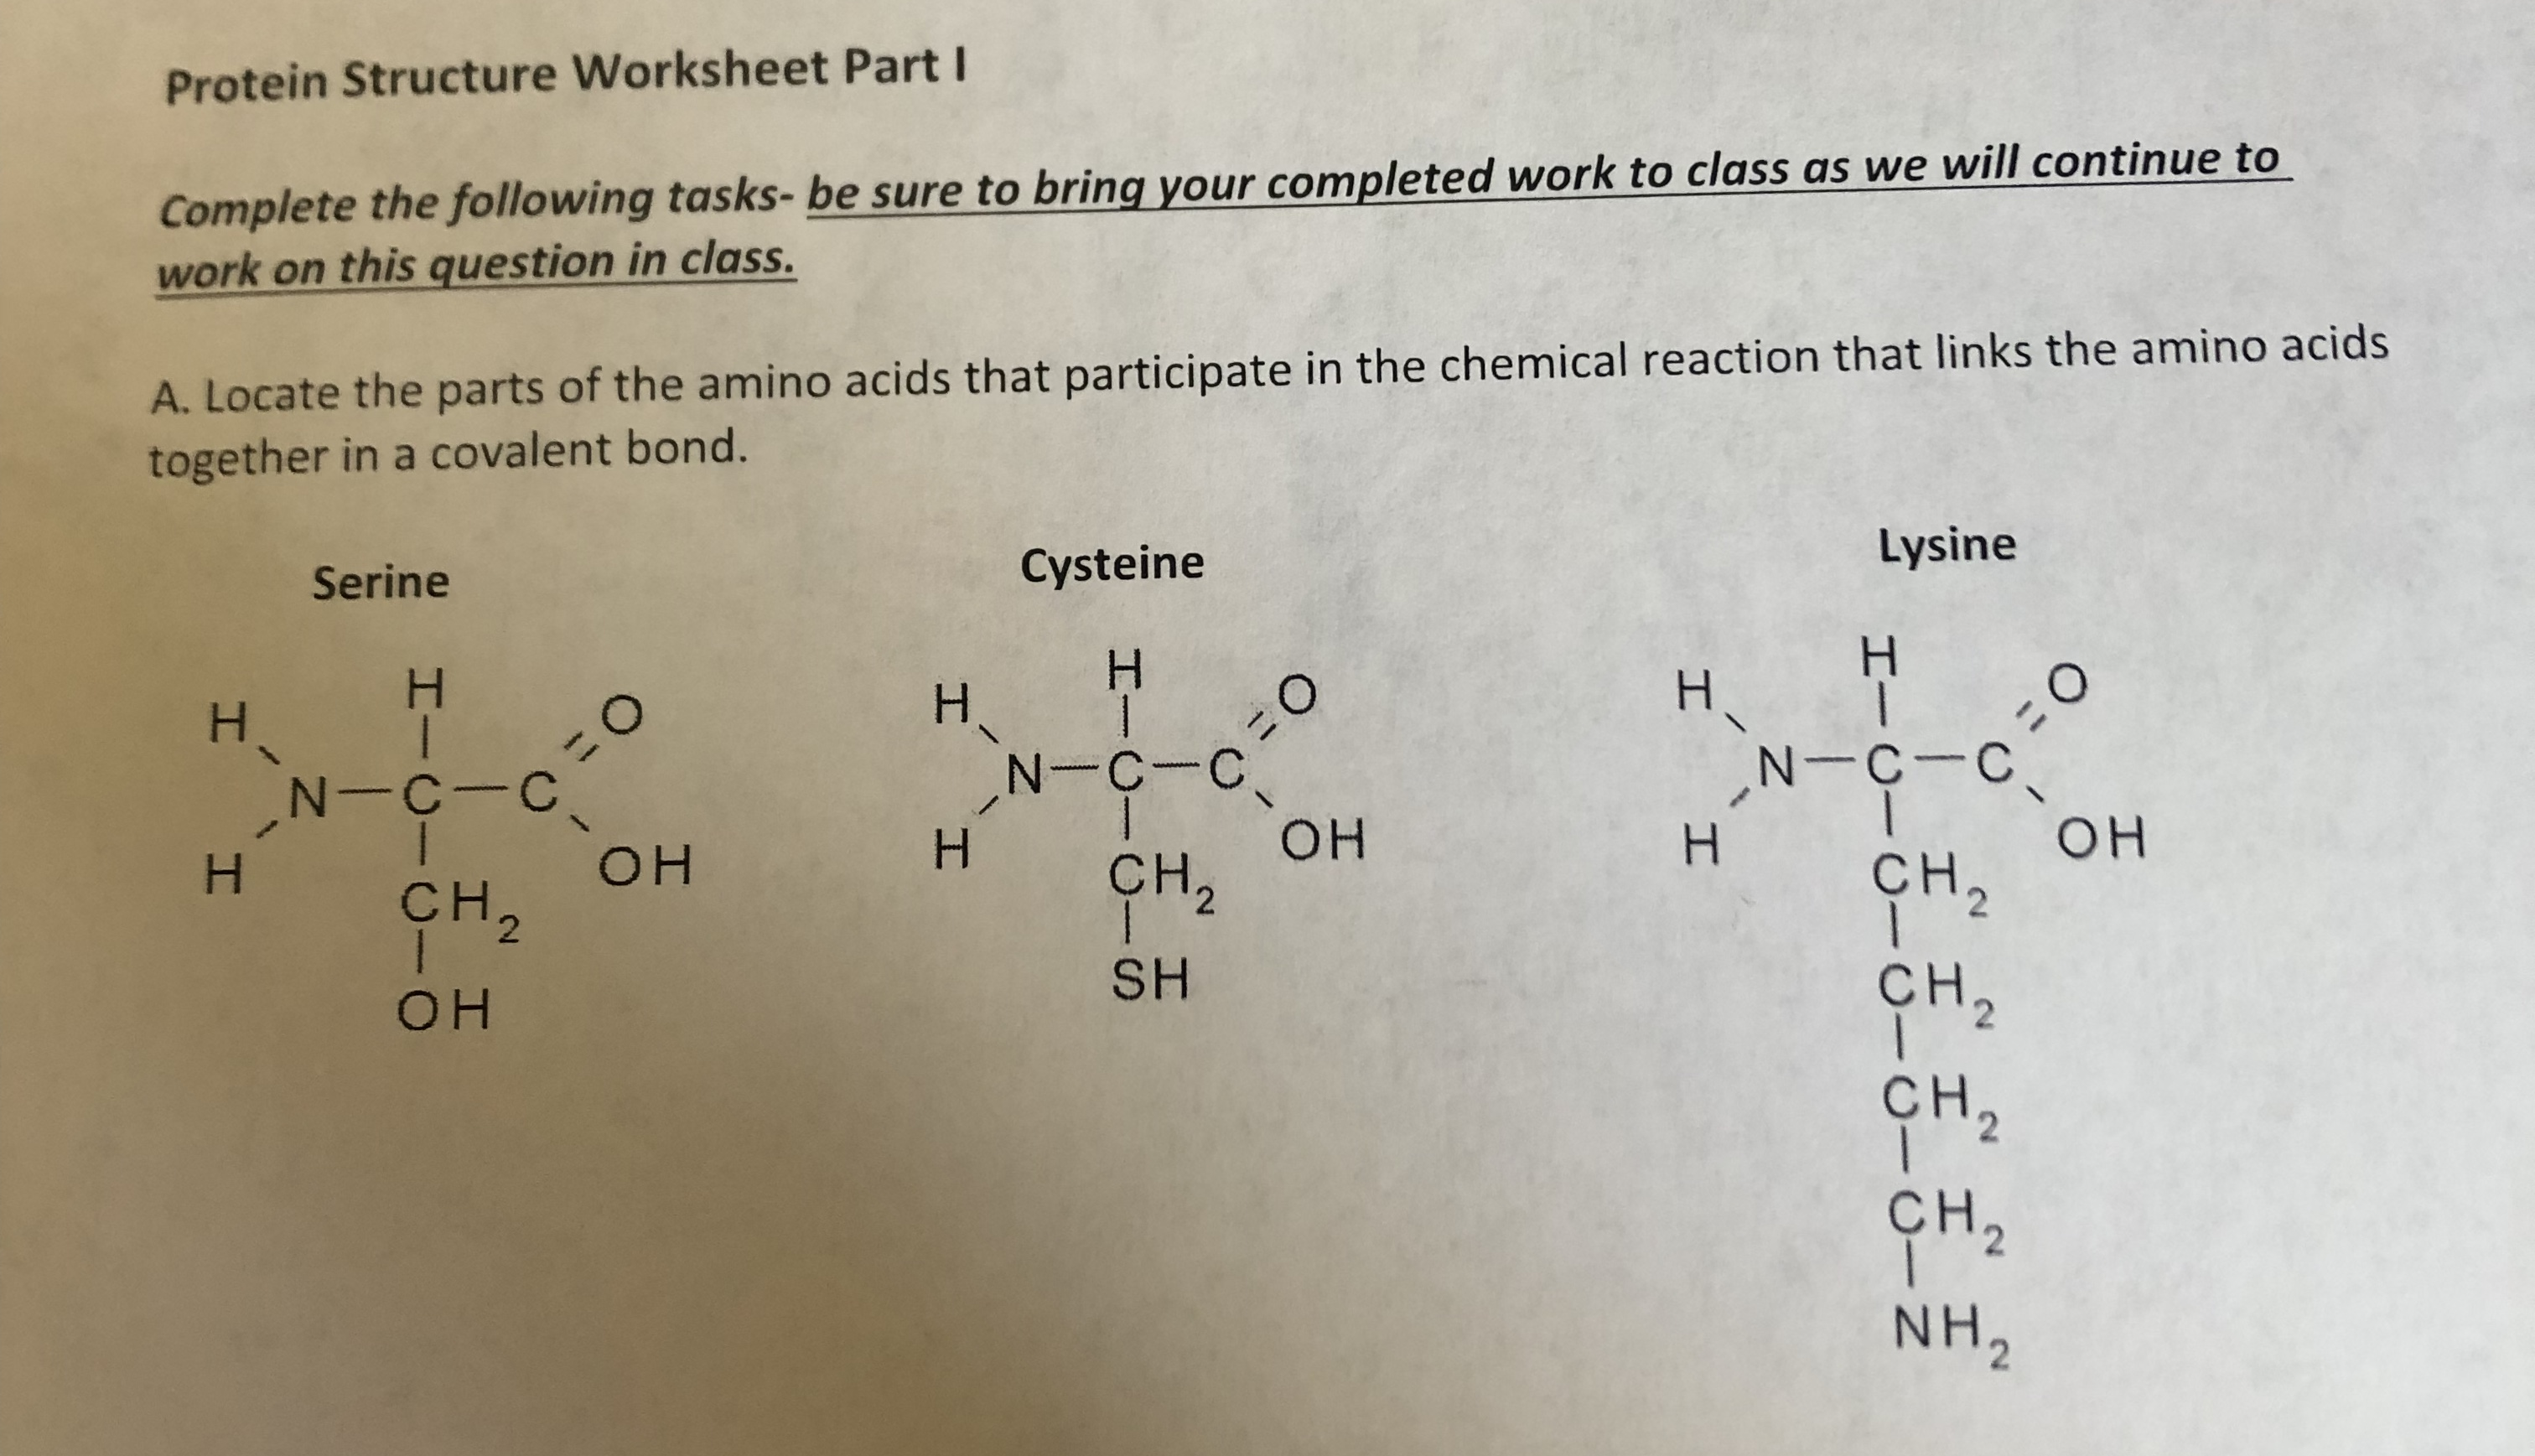 Answered Protein Structure Worksheet